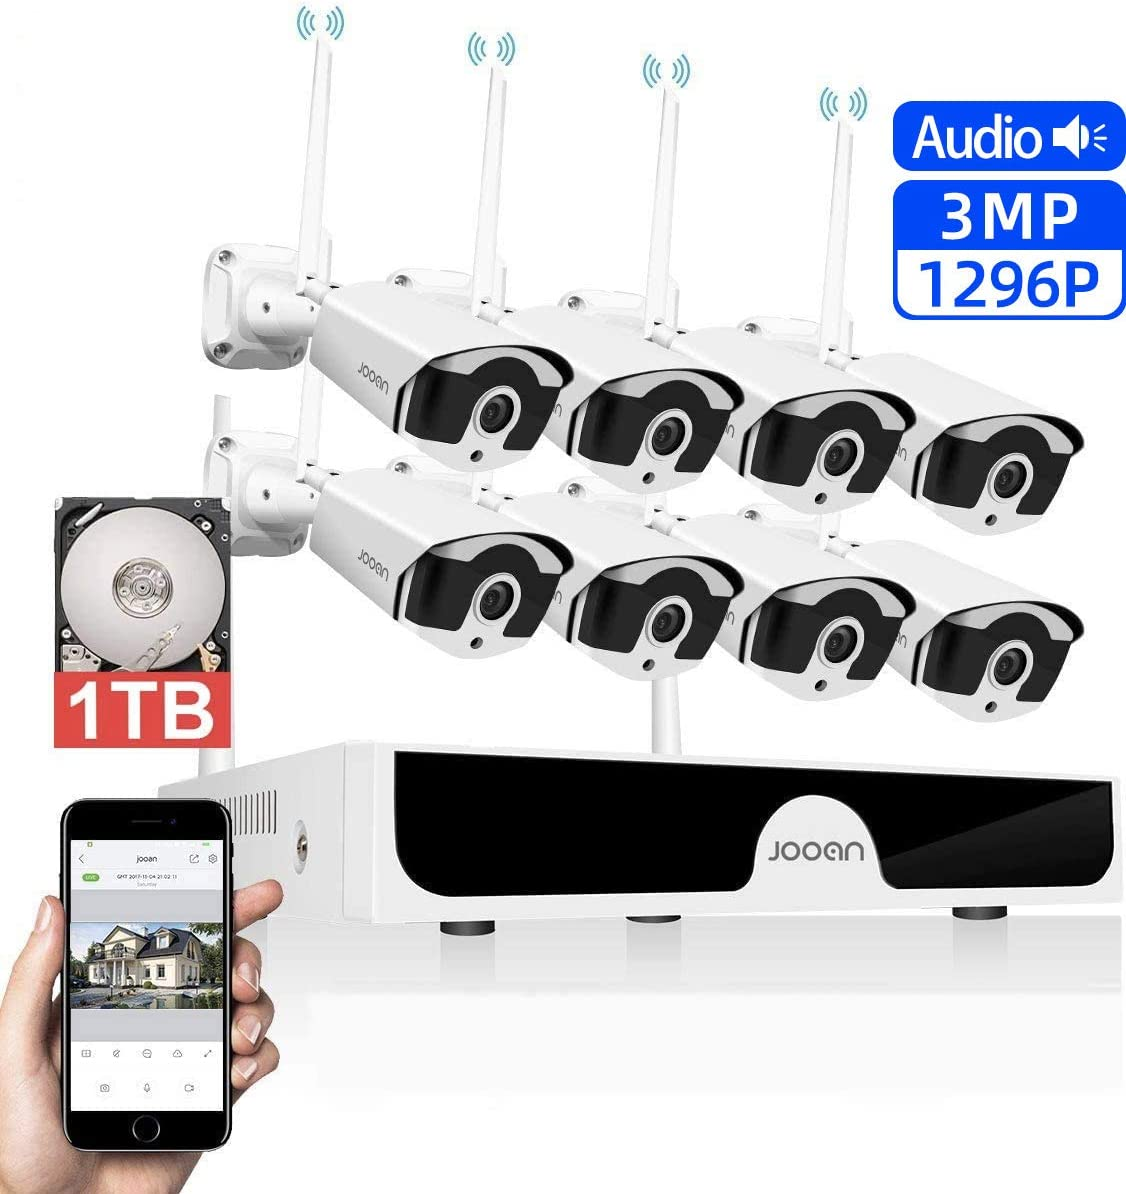 JOOAN 3MP Security Camera System Wireless,8-Channel NVR&8Pcs 1296P FHD (Clearer Than 1080P) Audio Record CCTV Cameras,Waterproof&Good Night Vision,Motion Alert(with 1TB Hard Drive)